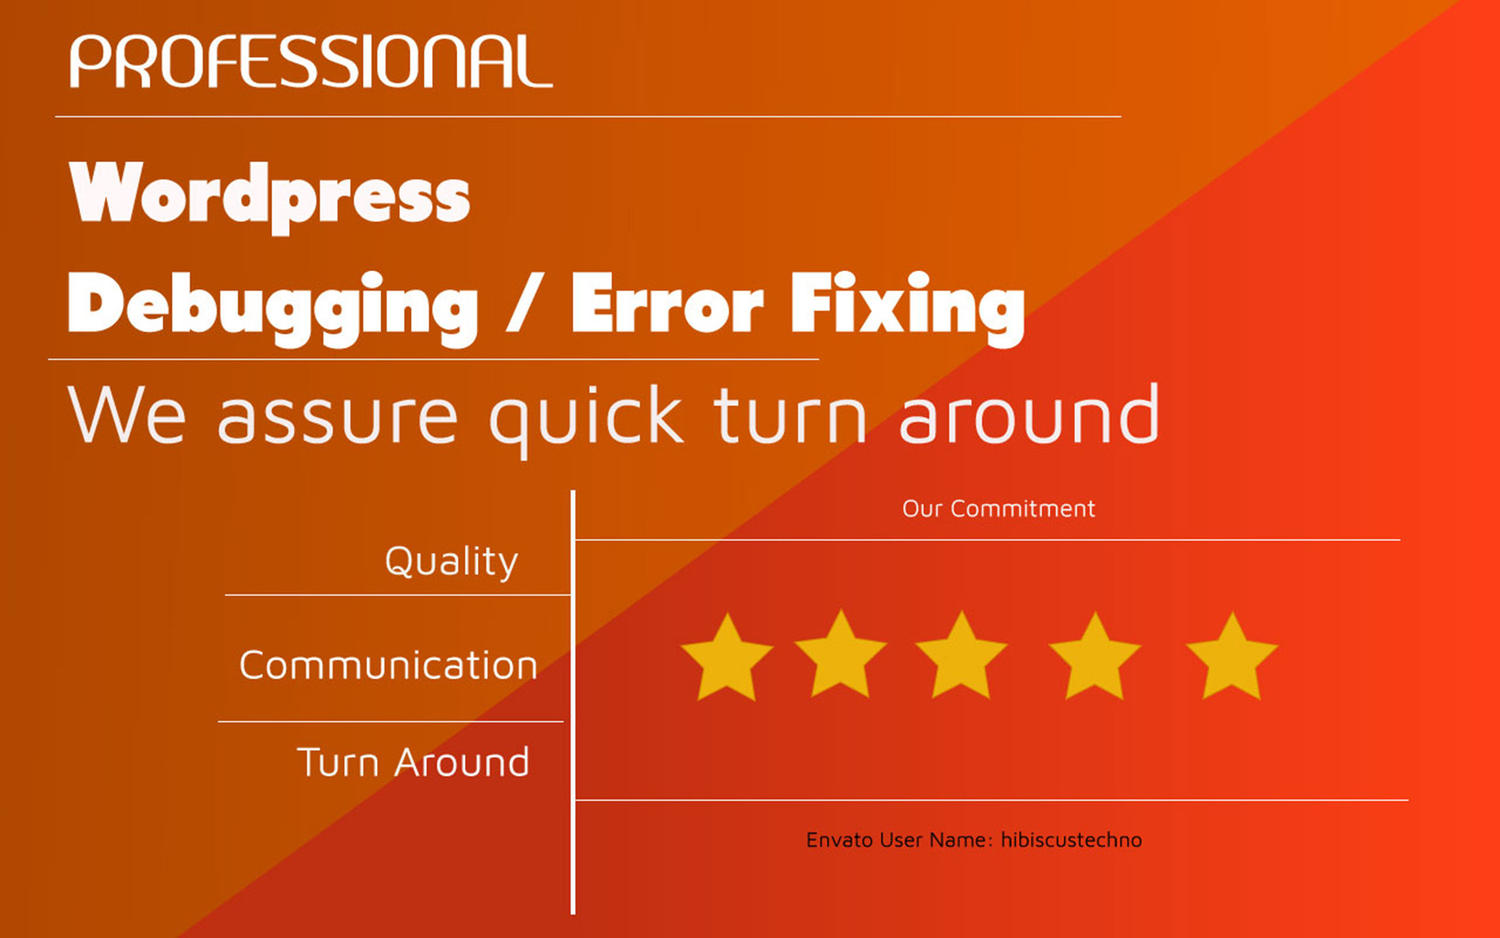 WordPress Error/Issue Fixes / Debugging by hibiscustechno - 110392